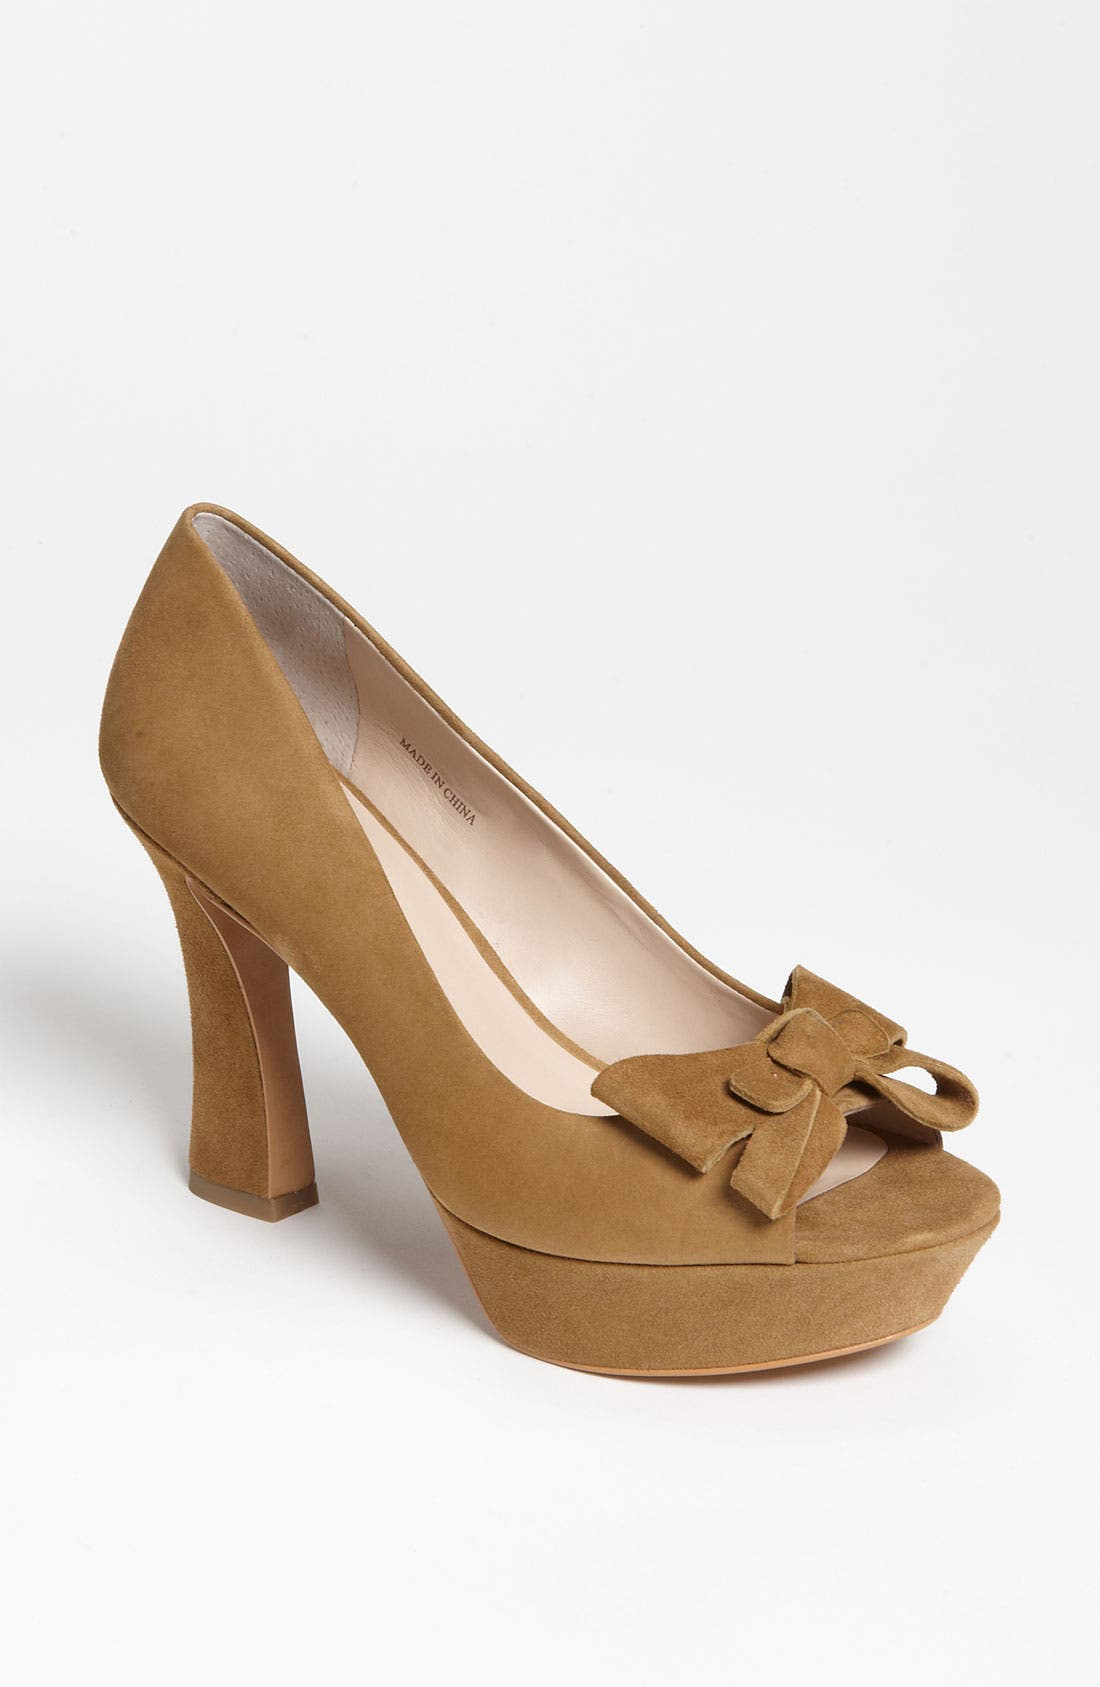 Alternate Image 1 Selected - Franco Sarto 'Keen' Pump